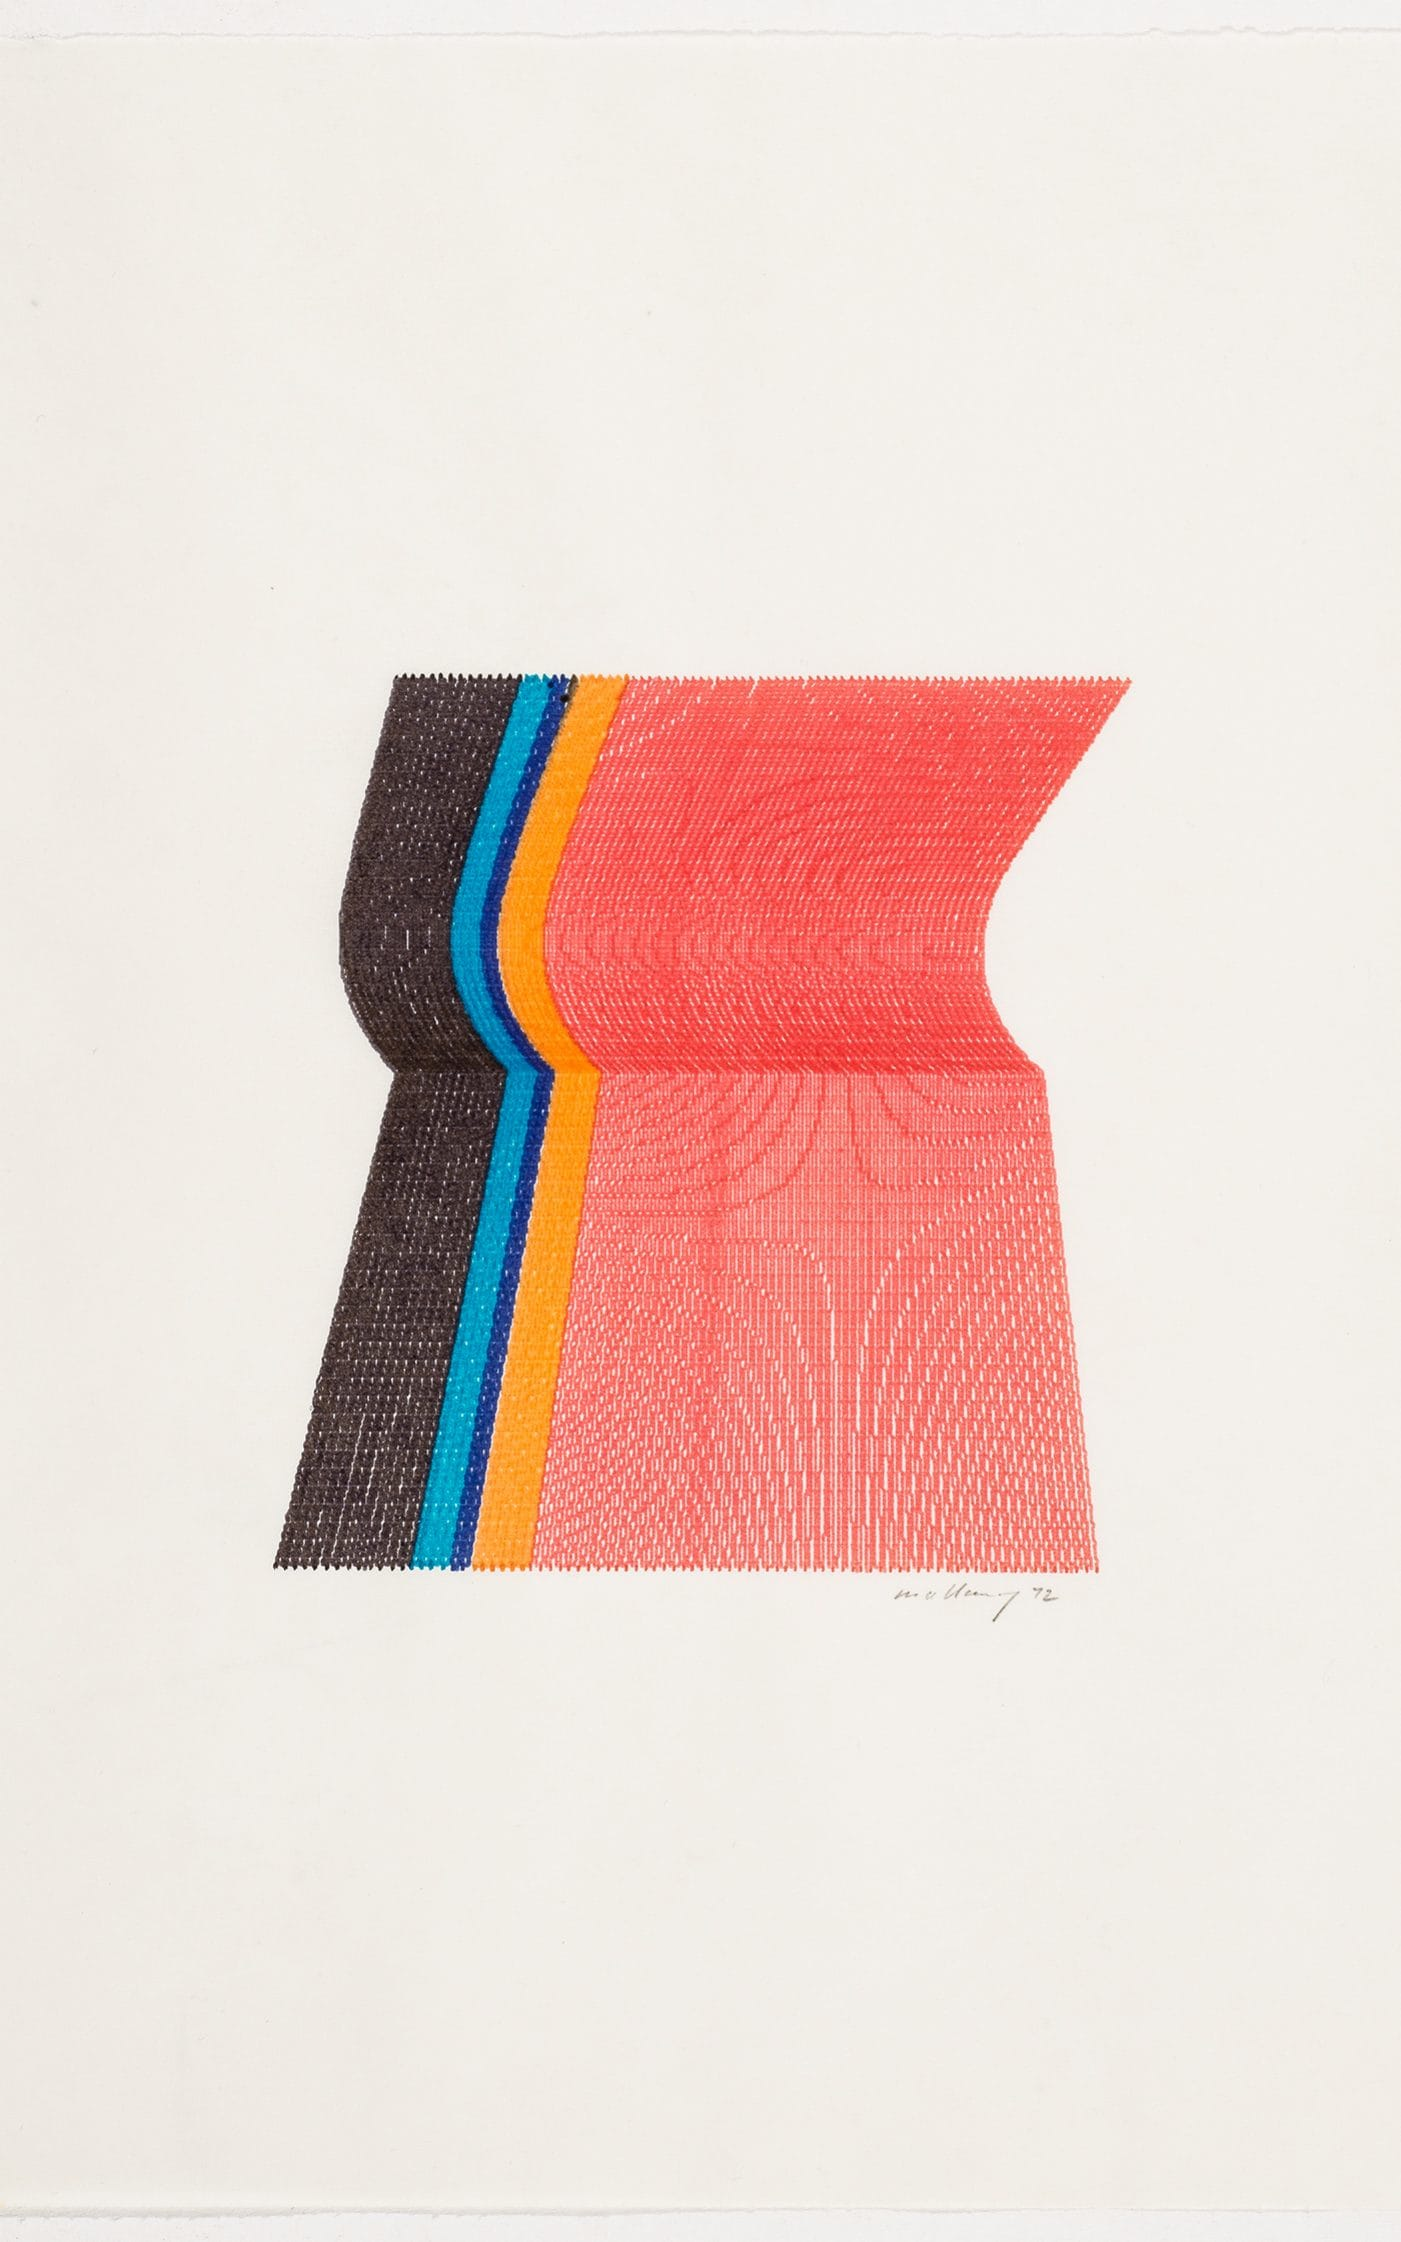 Robert W. Mallary, 3 colour plotter graphic, 1972, computer drawing, Source: Telegraph [10]